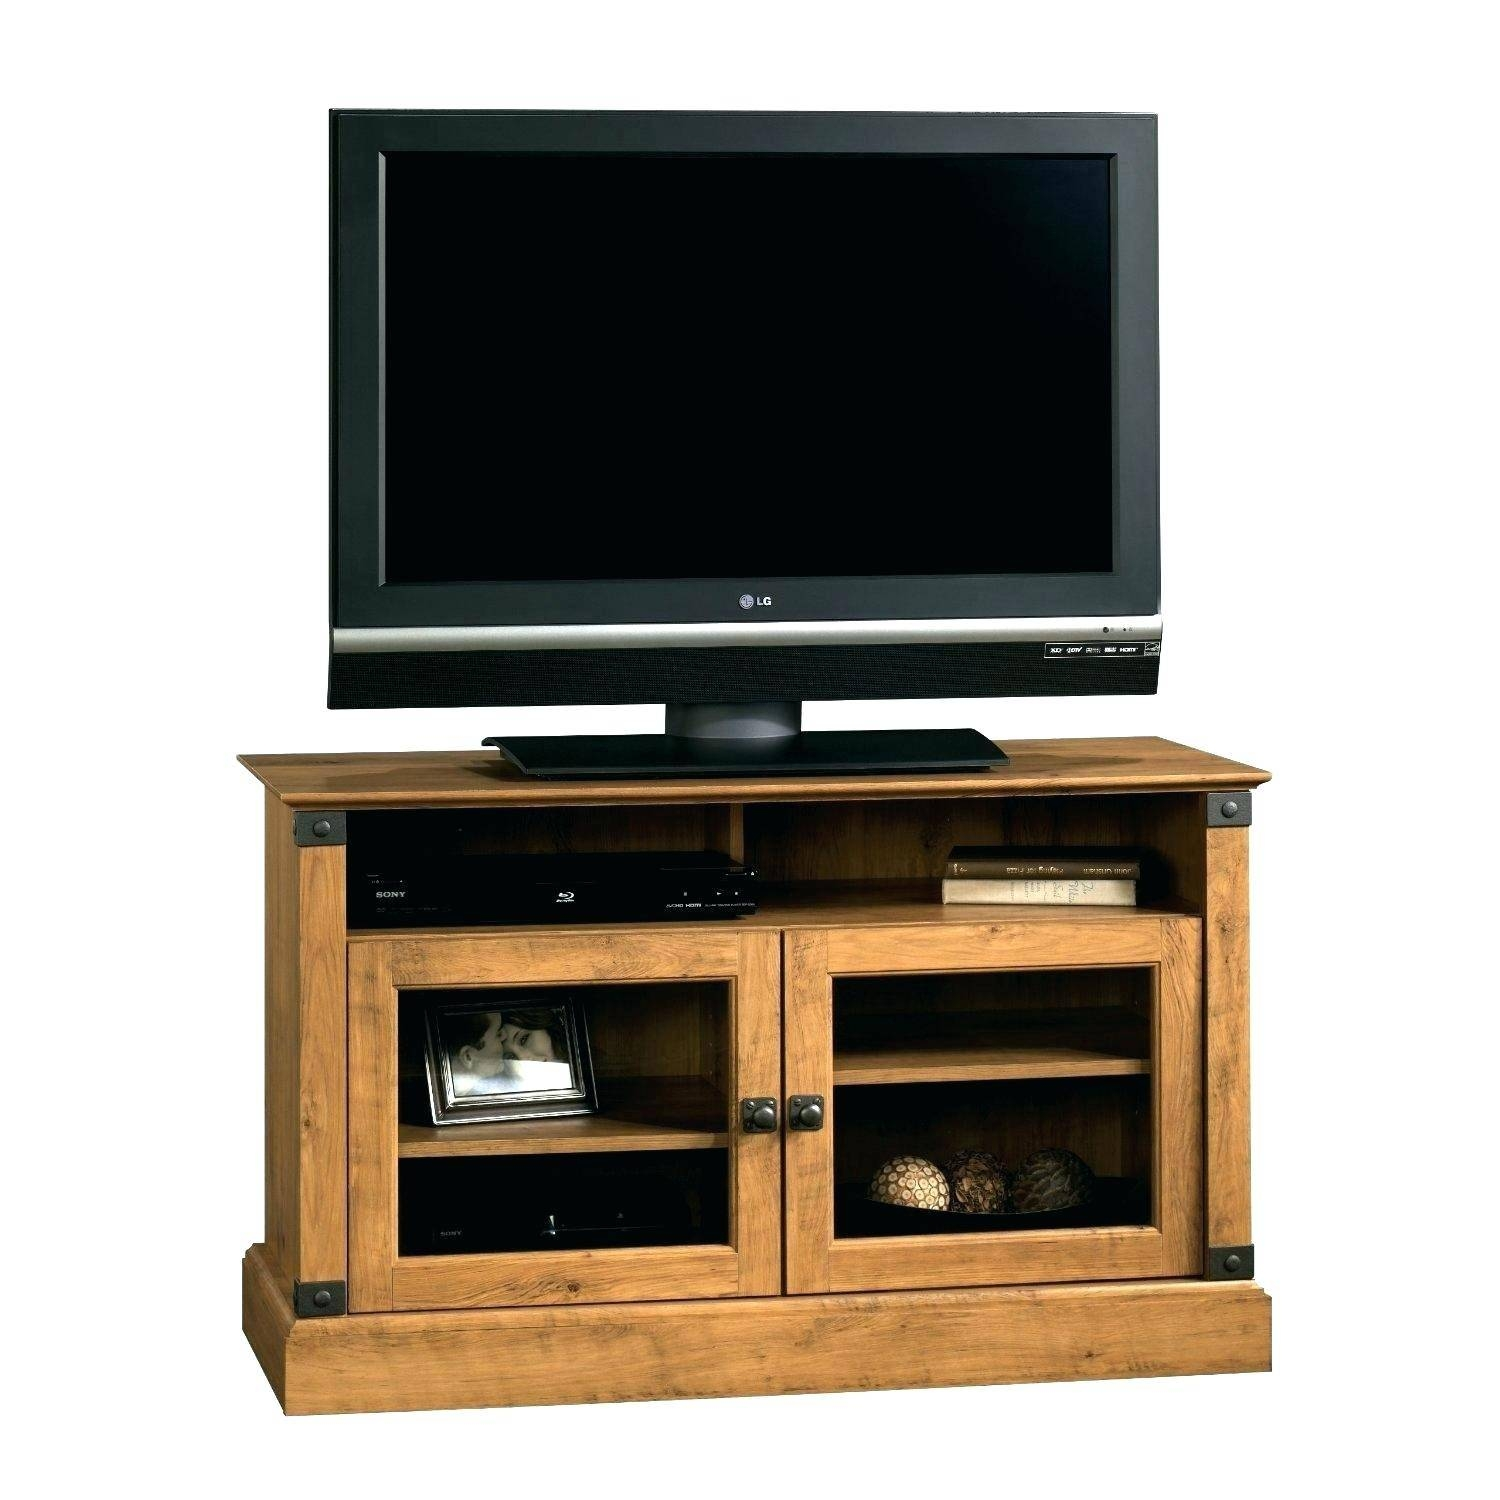 Full Image For Single Shelf Tv Stand Lcd Advertising Display Metal with Single Shelf Tv Stands (Image 5 of 15)